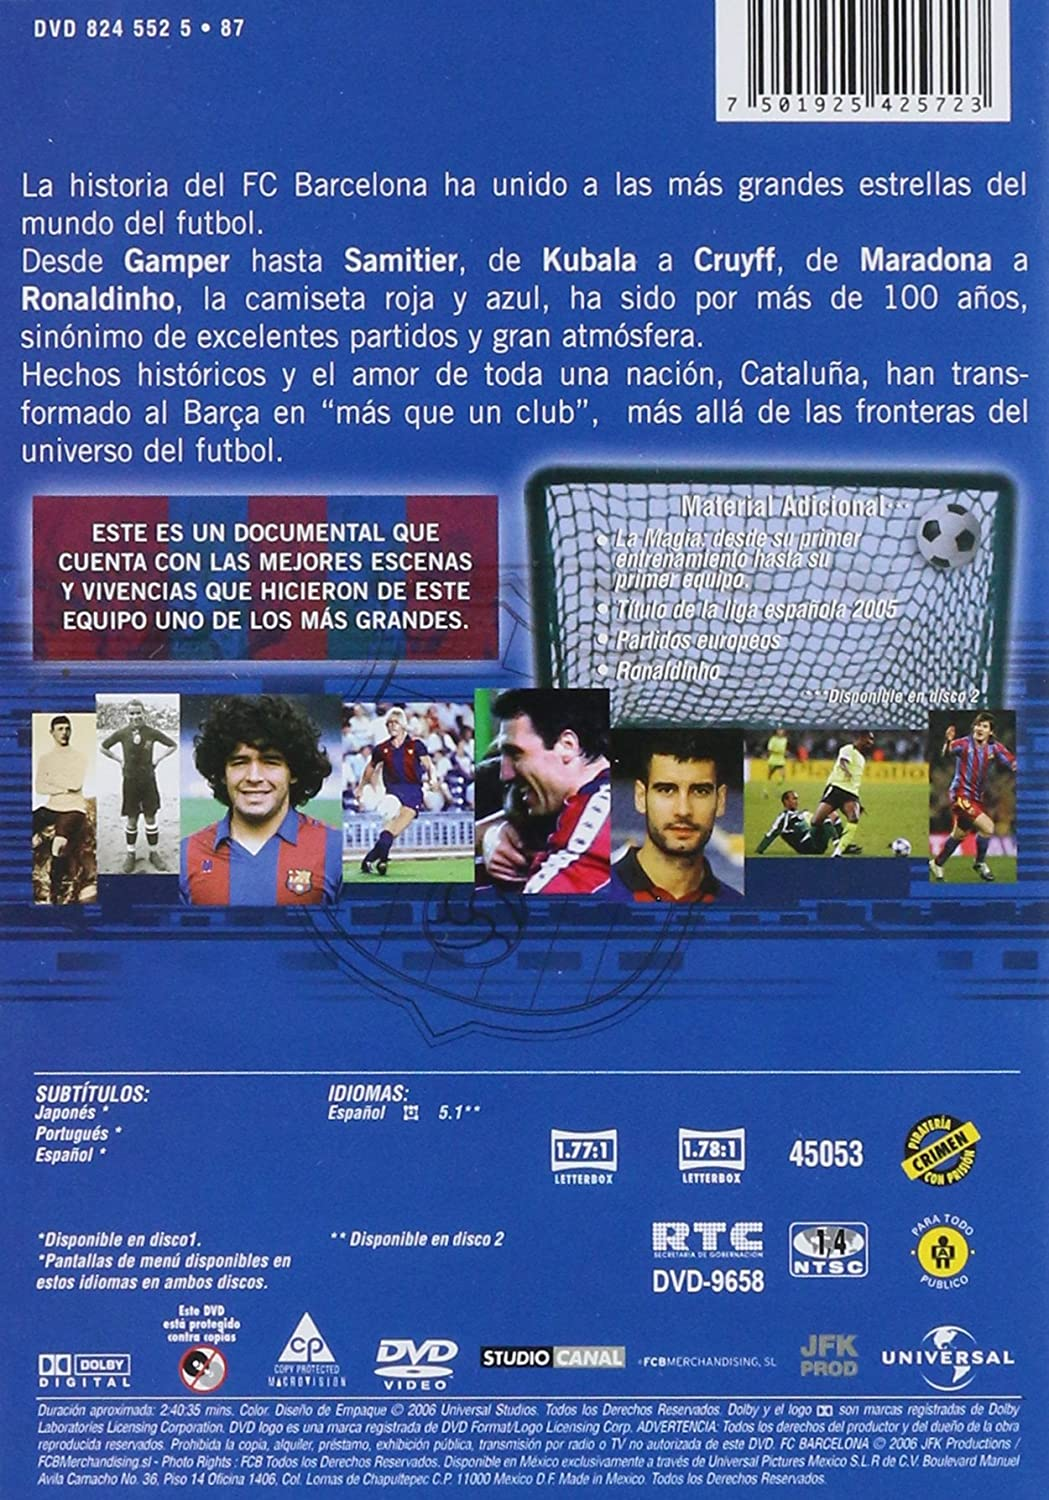 Amazon.com: FC Barcelona-Mas Que un Club [NTSC/REGION 1 & 4 DVD. Import-Latin America] (Subtitles: Japanese, Portuguese): Movies & TV